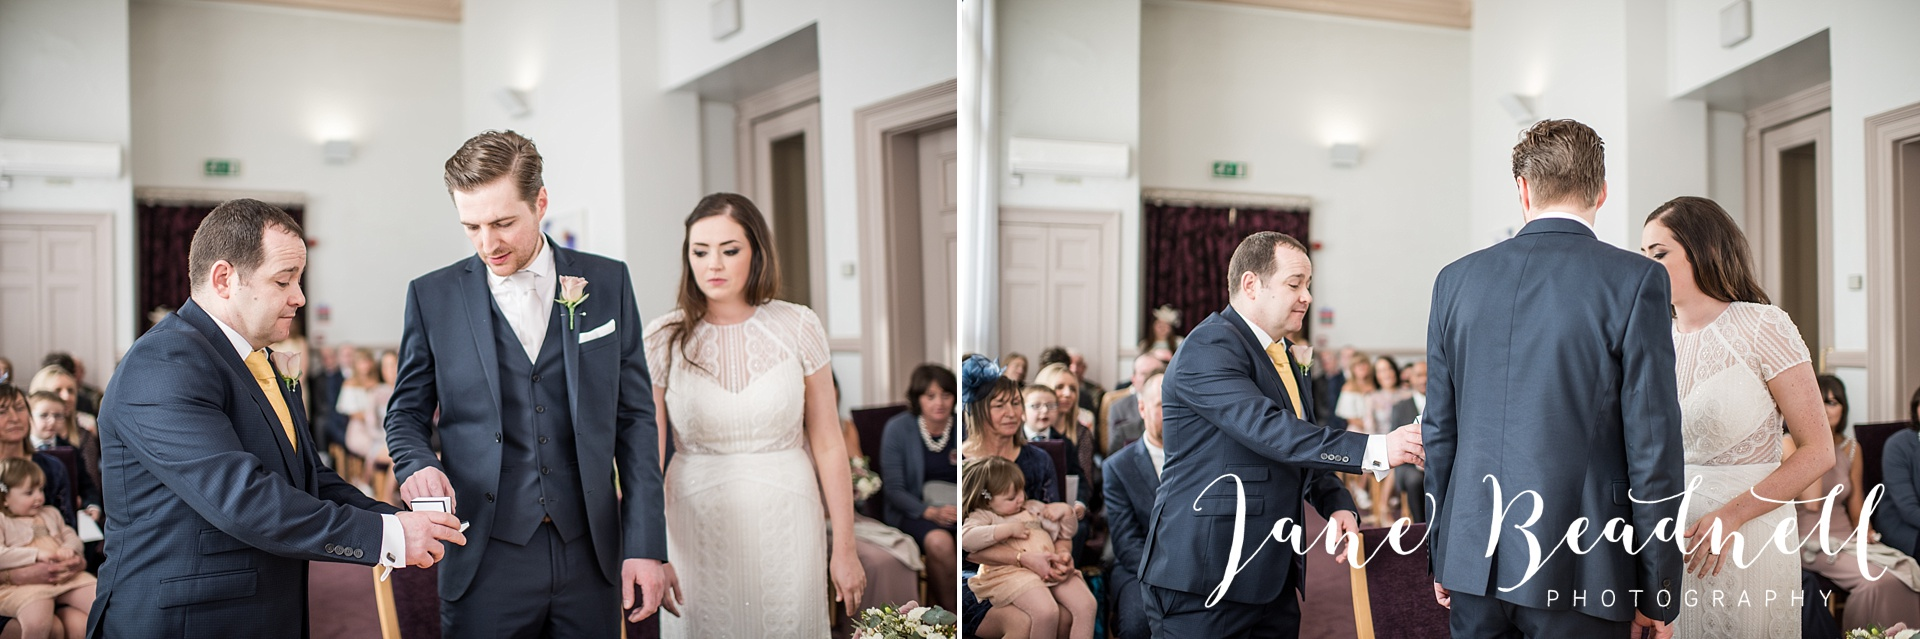 Wedding photography Cross Keys Leeds Wedding Jane Beadnell Photography_0033